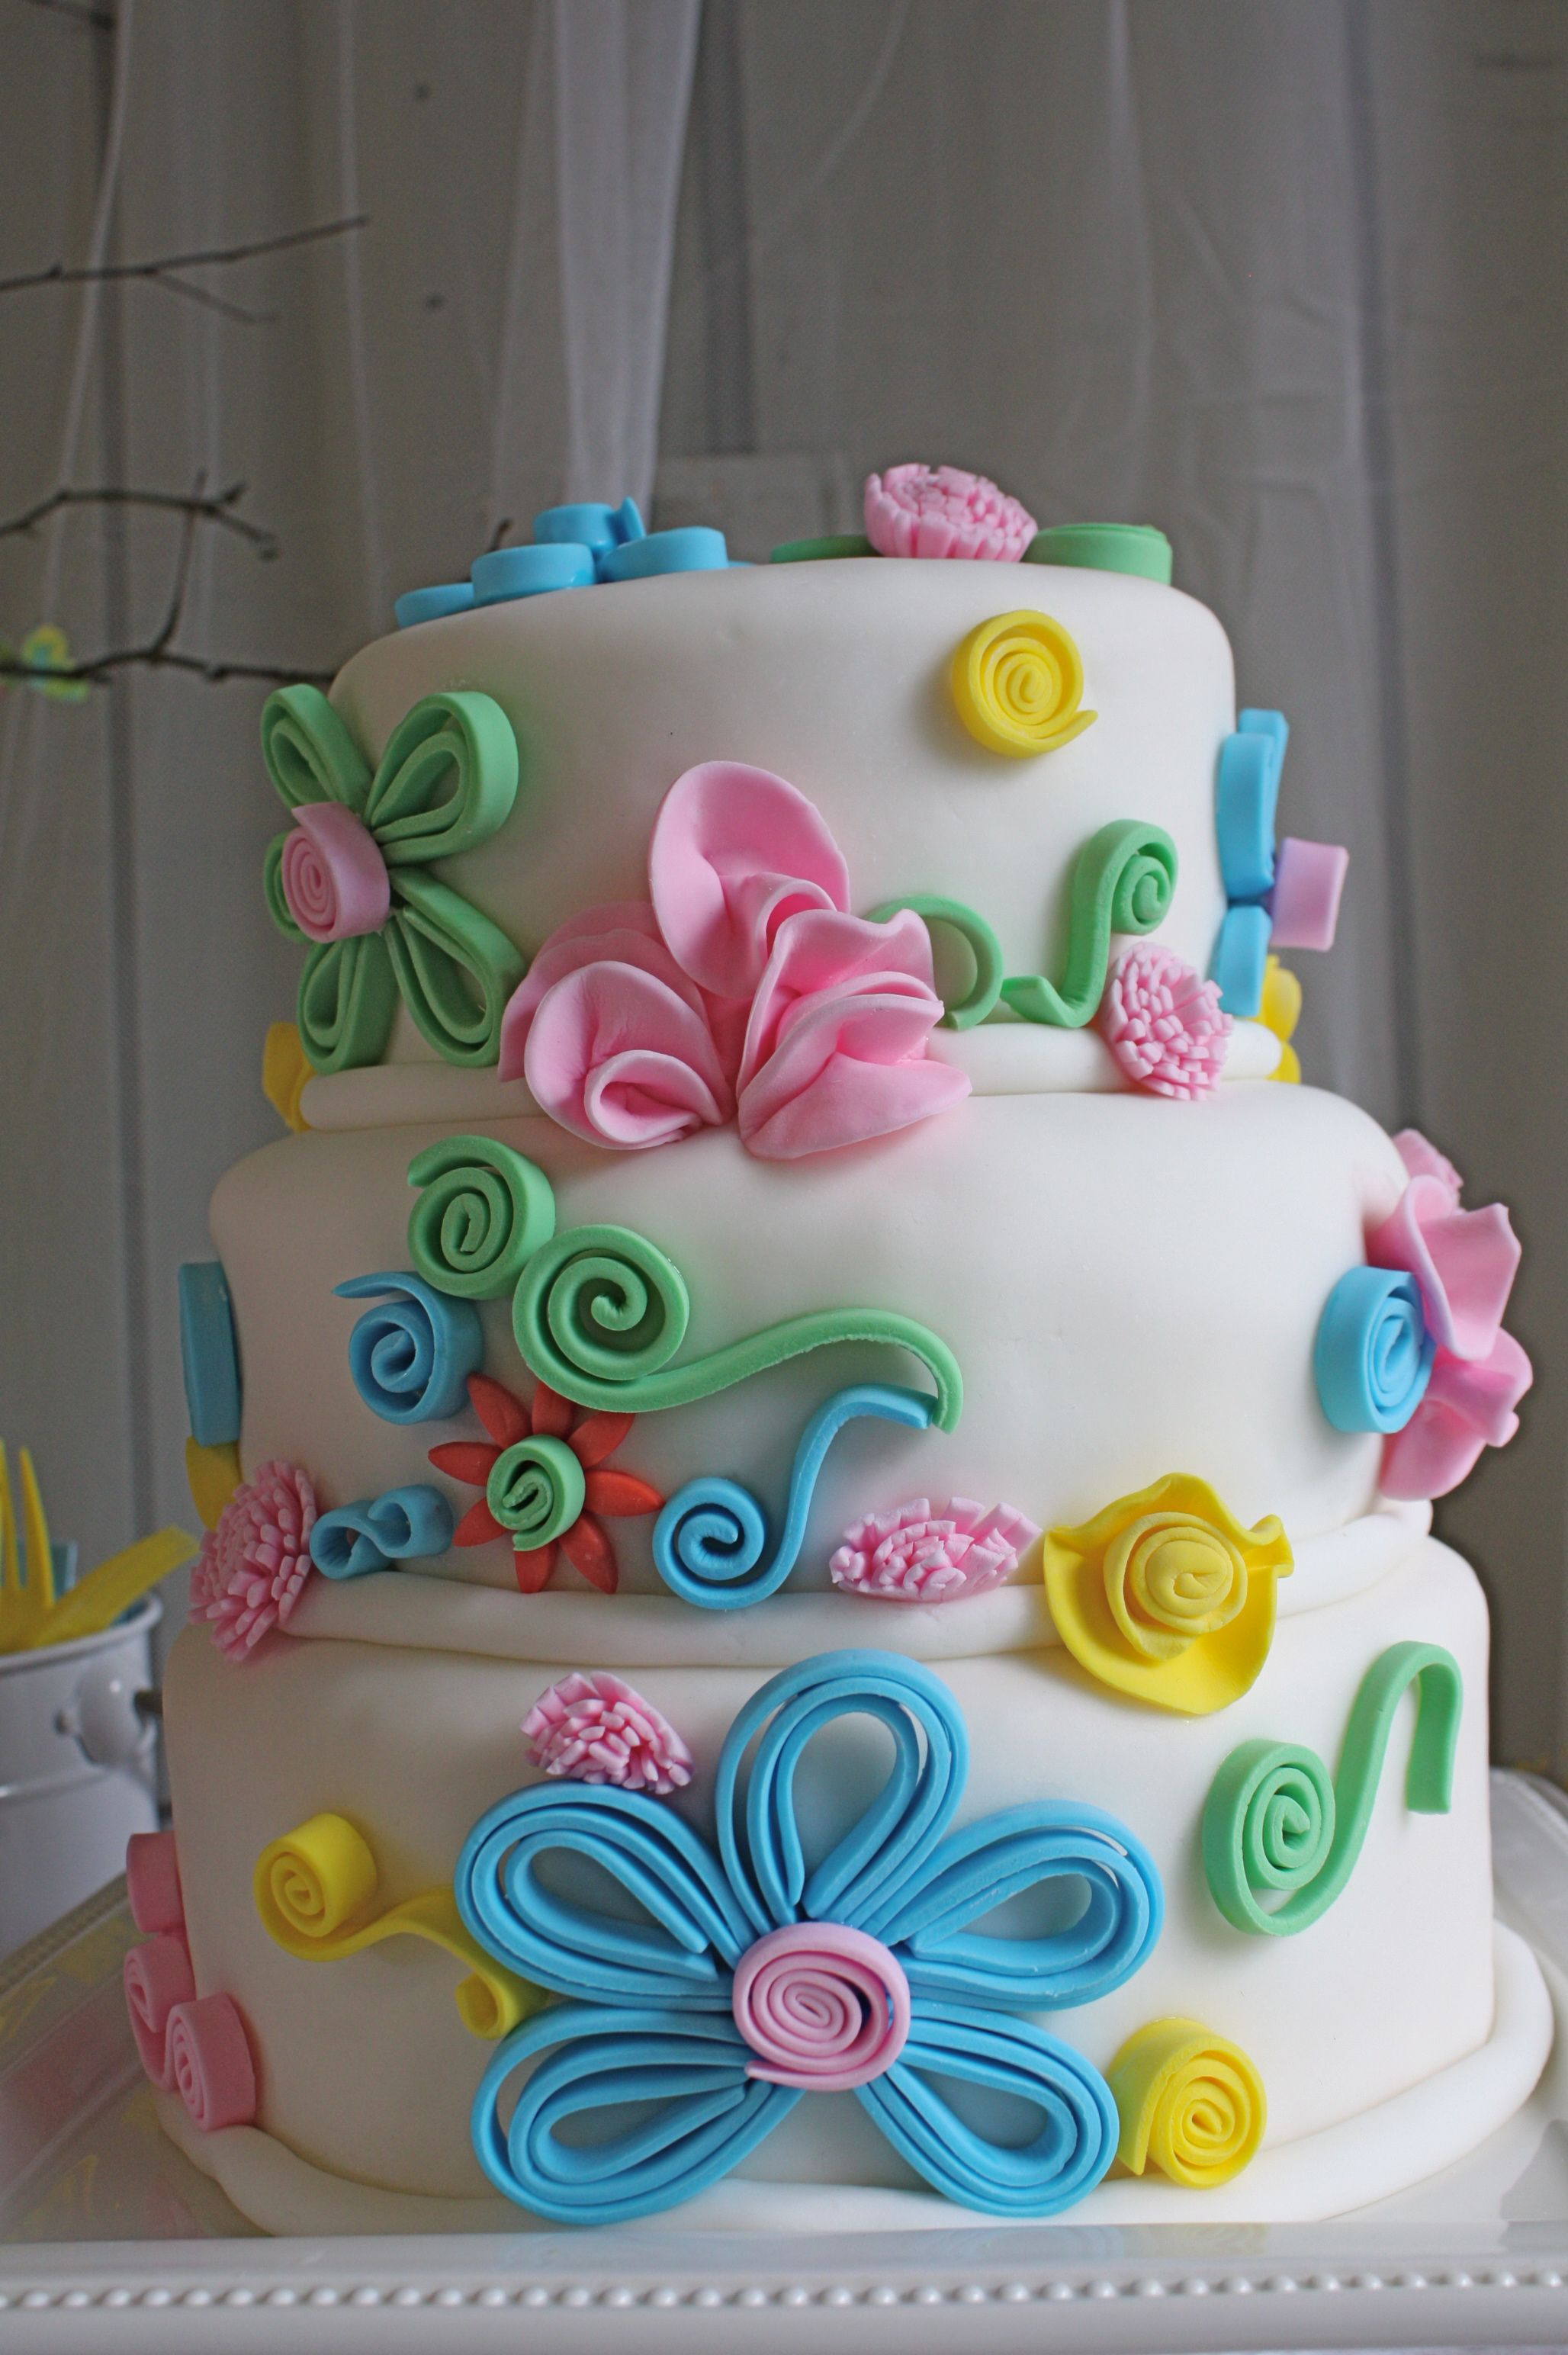 Fondant Flower Cake Cake Decorating Ideas Pinterest Cake